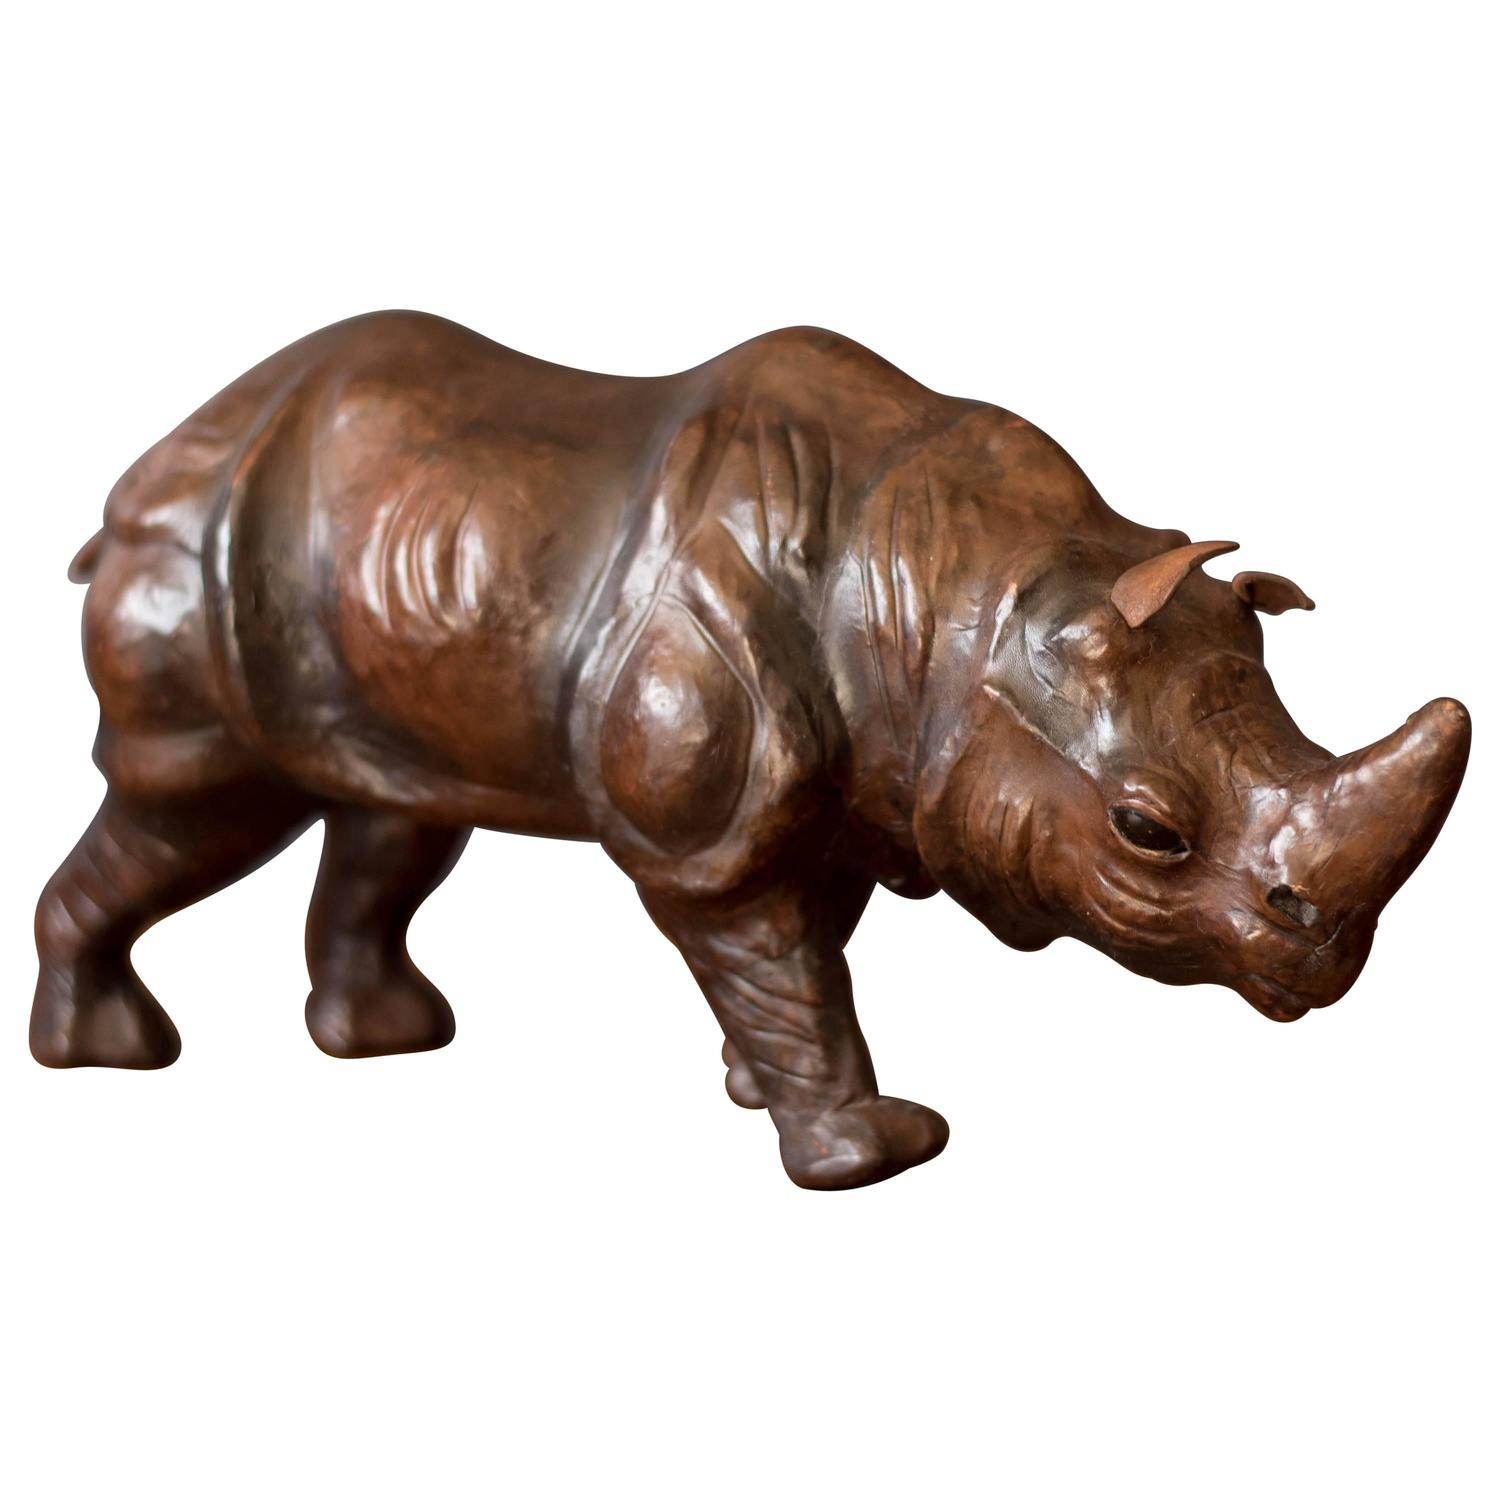 Vintage leather rhino sculpture for sale at stdibs